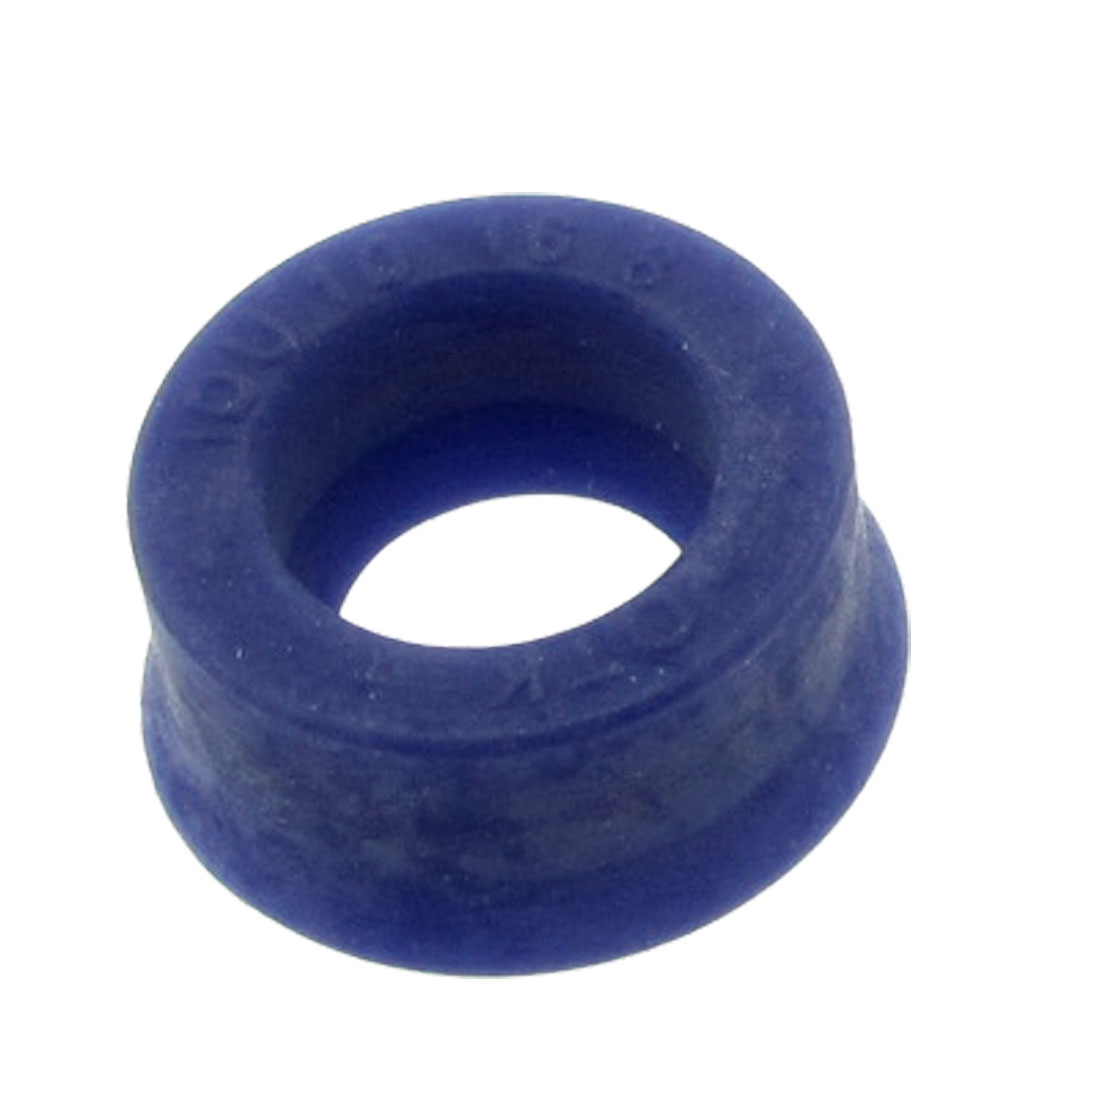 10mm x 16mm x 8mm Polyurethane Cylinder Piston Rod Oil Seal IDU